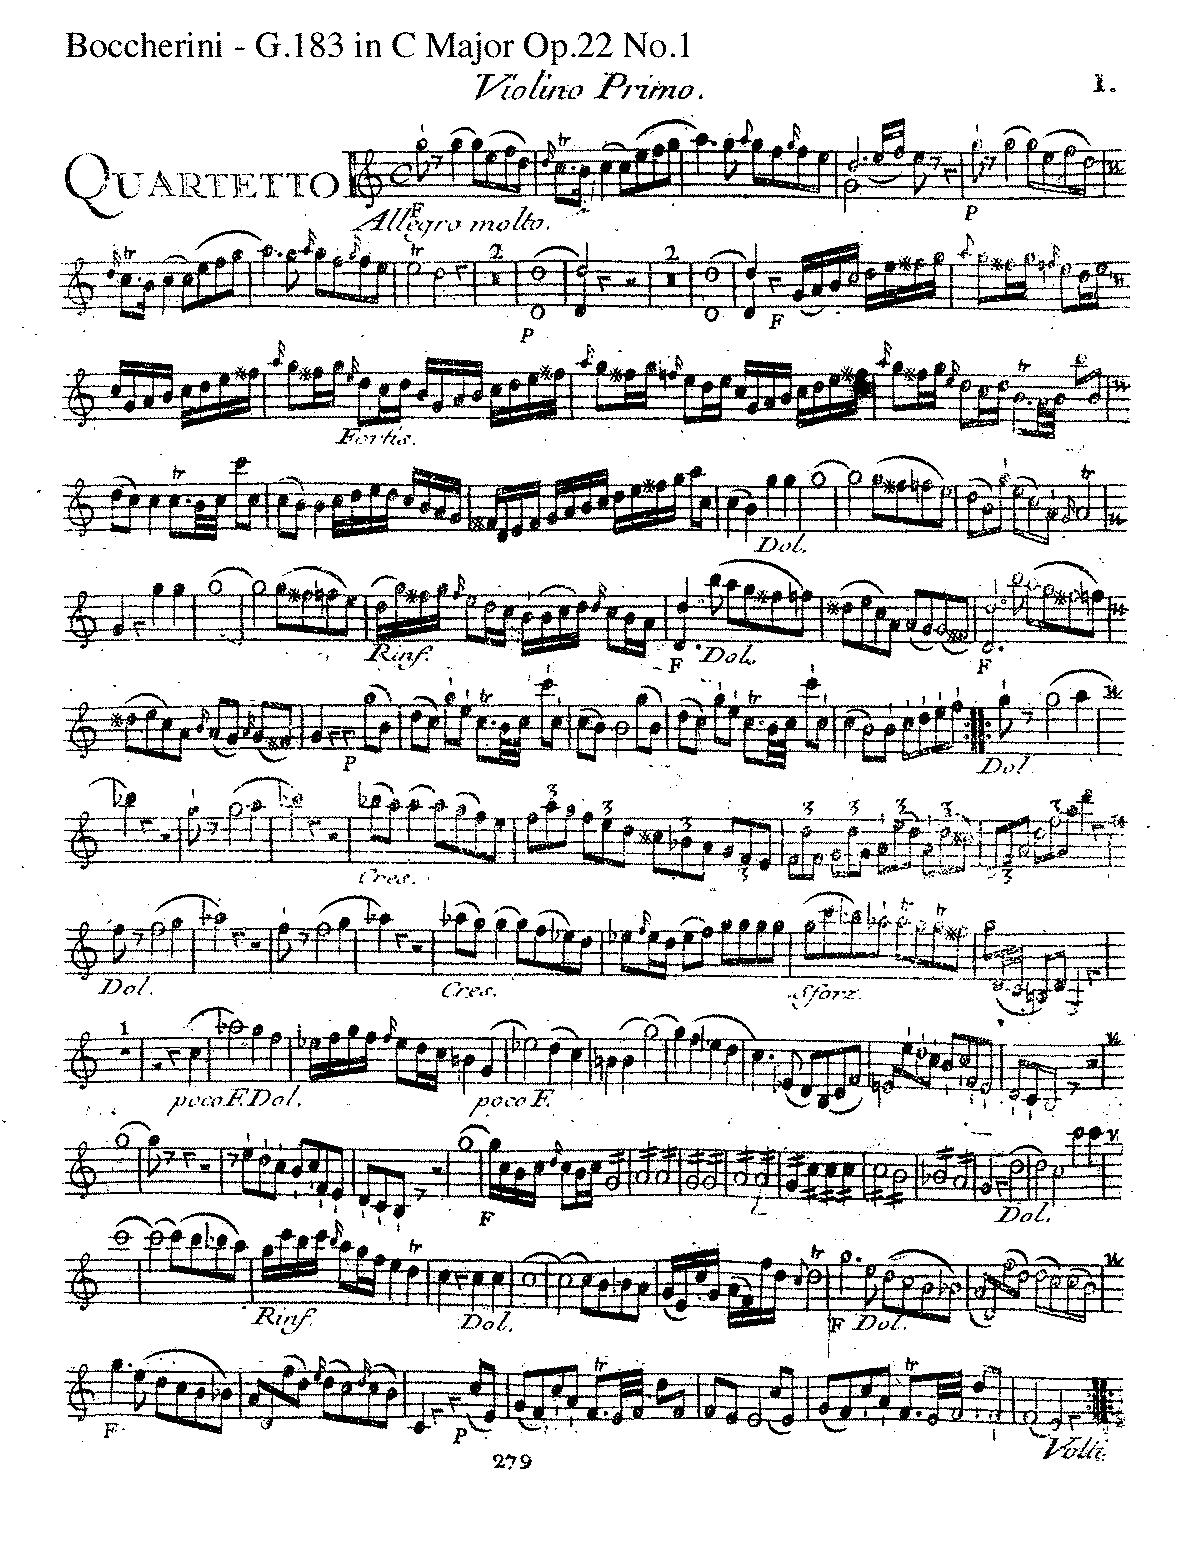 PMLP195270-Boccherini - String Quartet G183 in C Major Op22 No1 (Op26 No1) parts.pdf